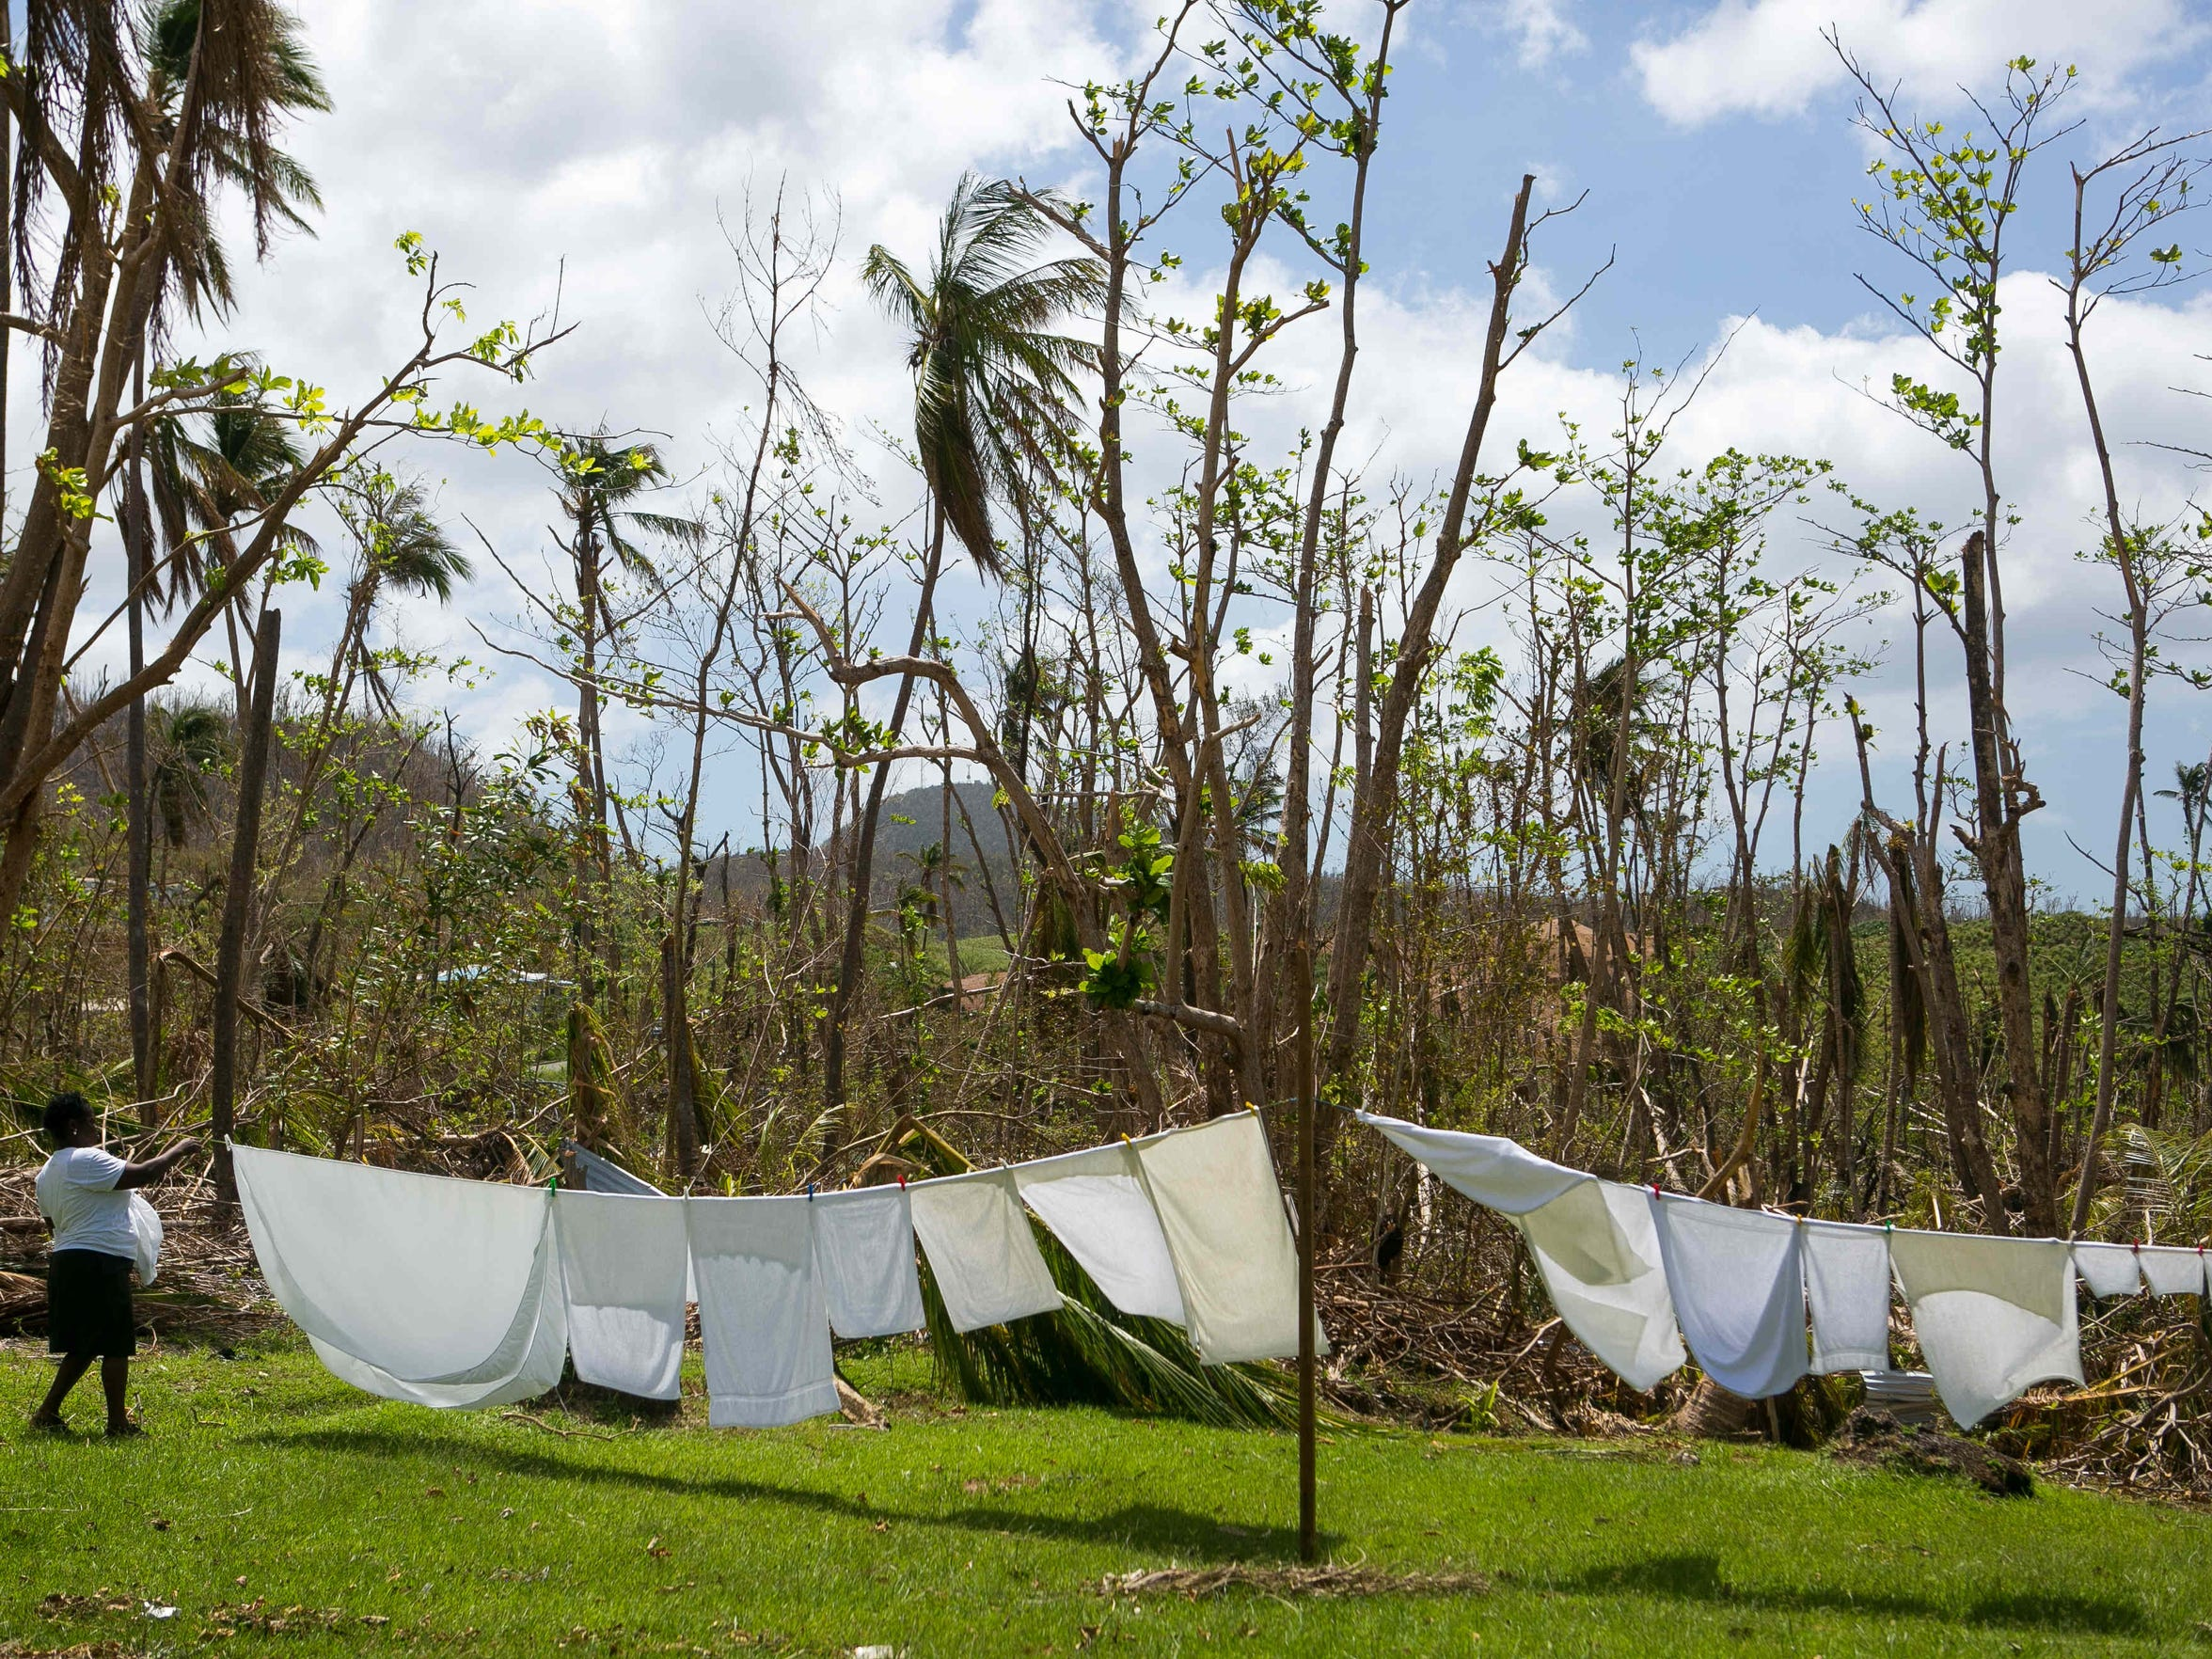 An employee at the Portsmouth Beach Hotel hangs bedsheets and towels next to what used to be a lush landscape in Portsmouth, Dominica.